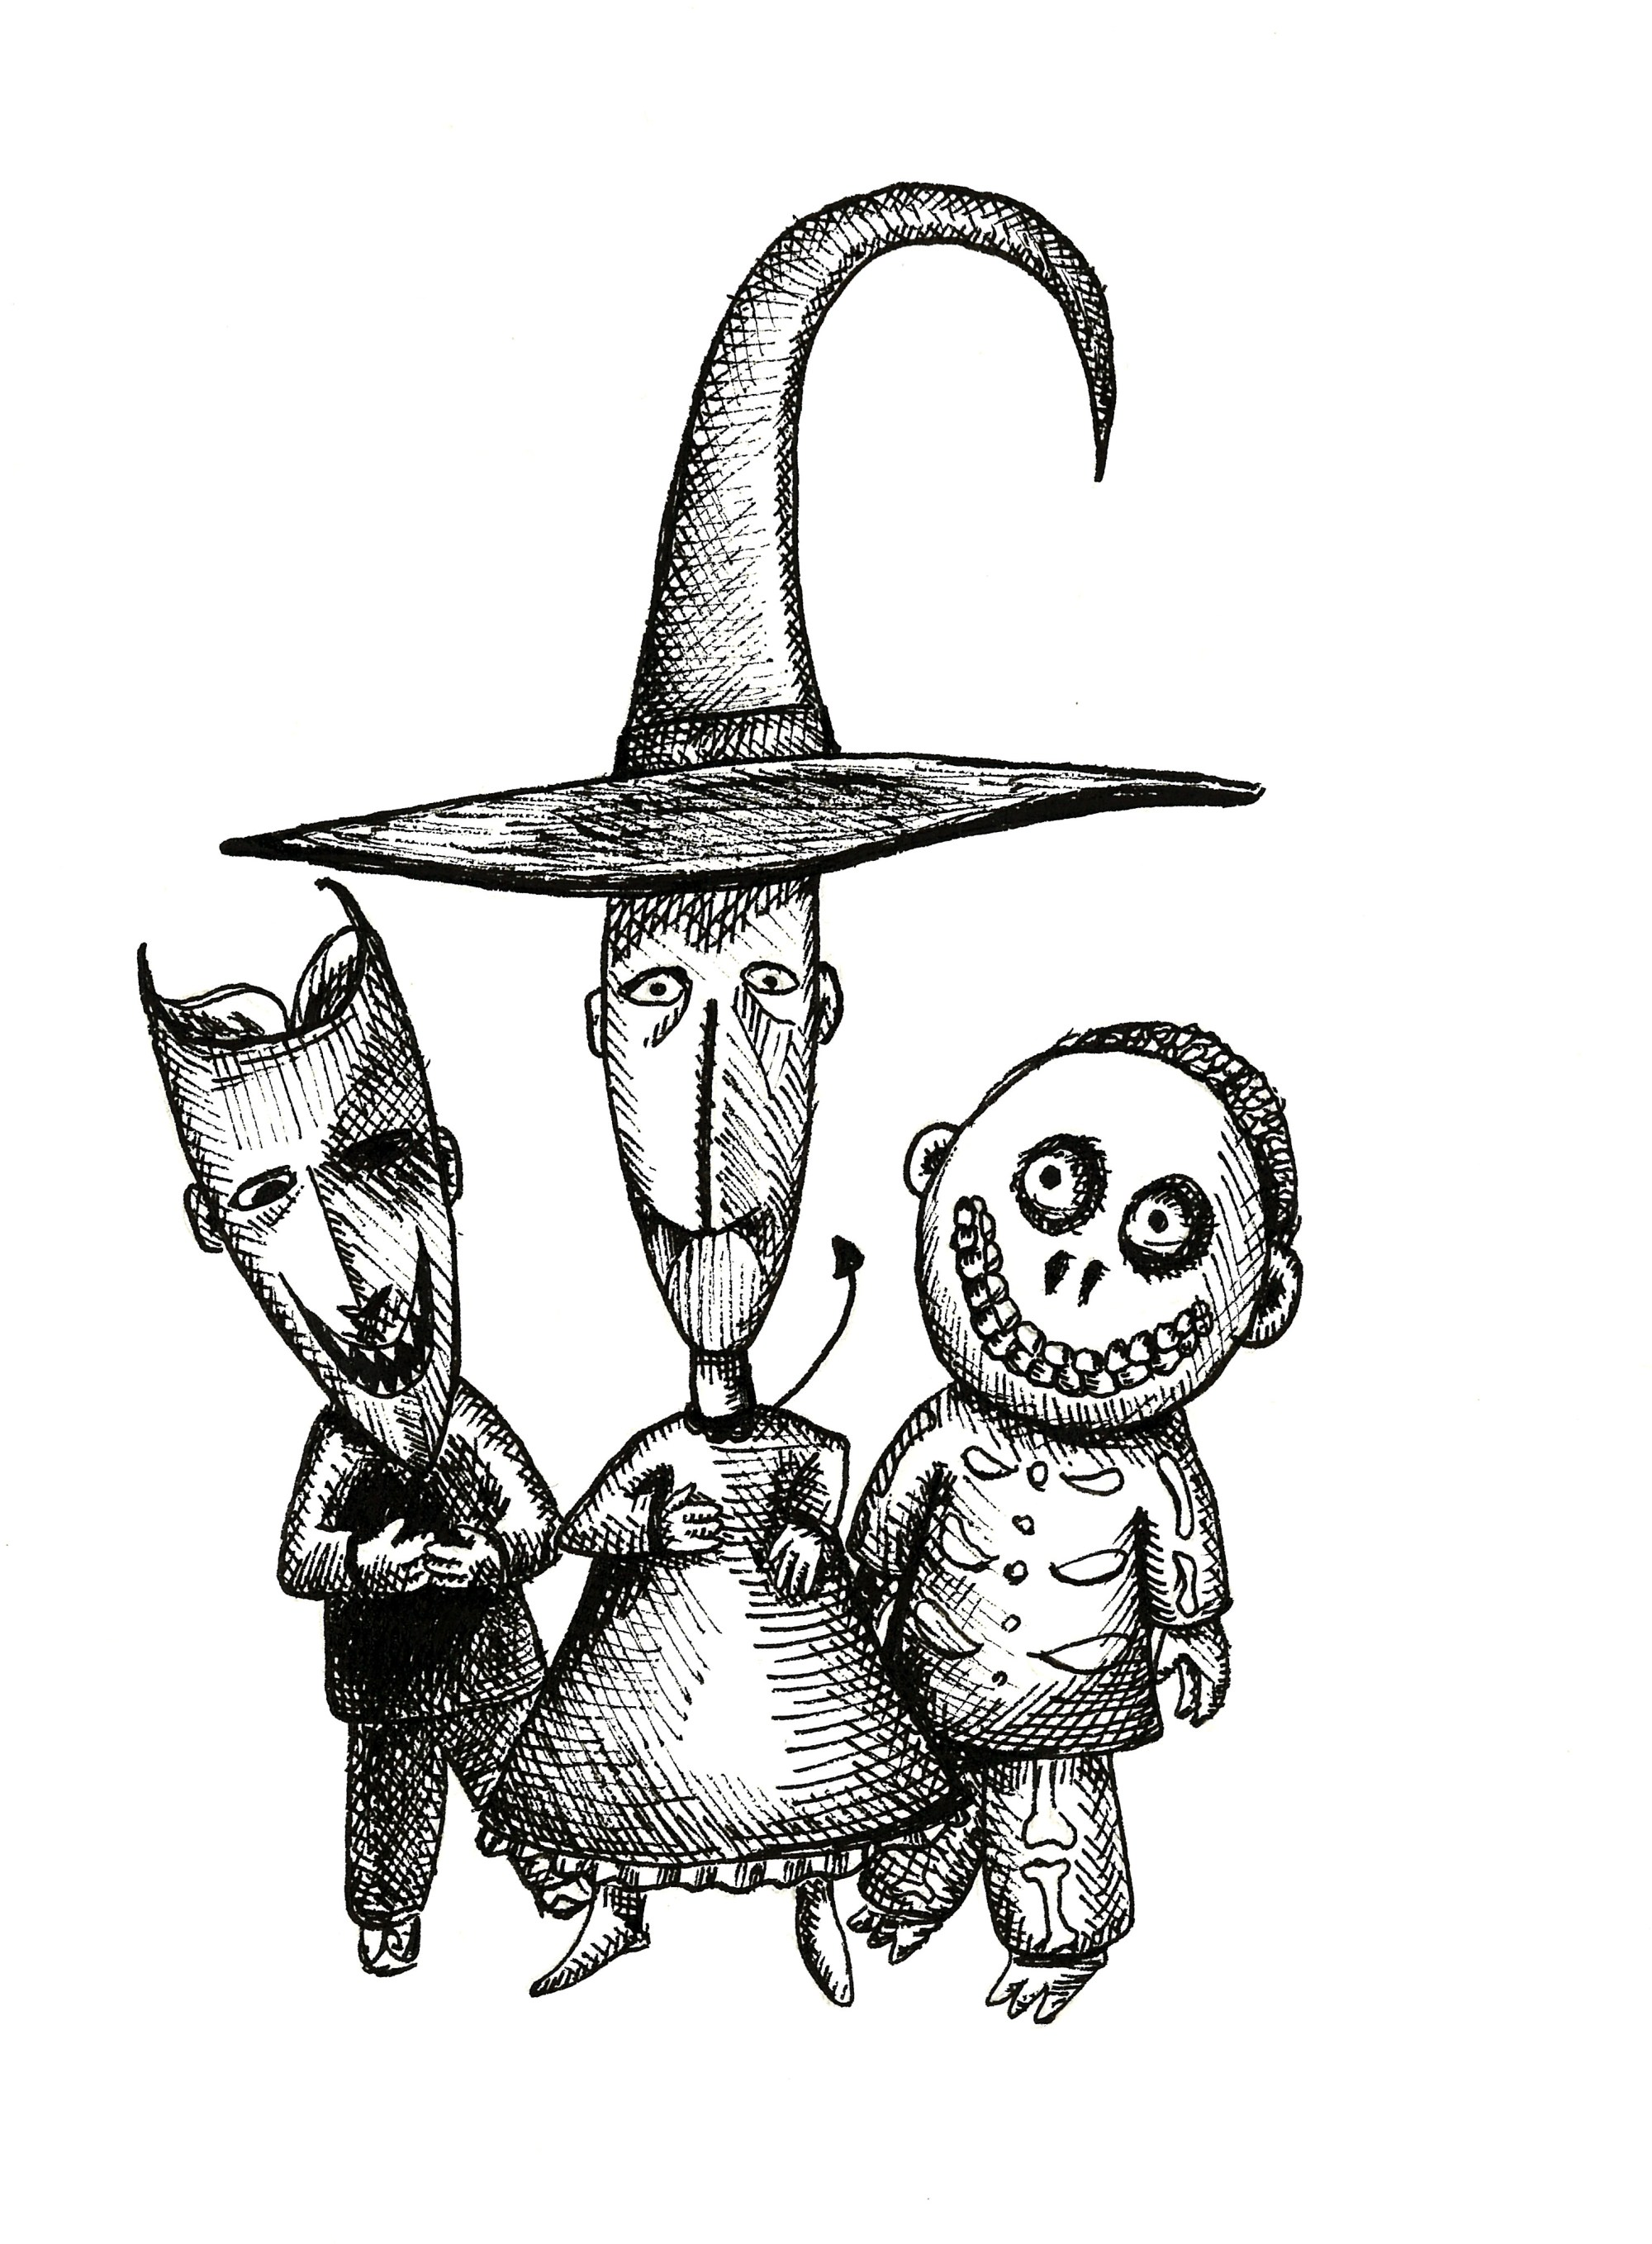 hight resolution of 2977x4043 the nightmare before christmas drawings nightmare before christmas